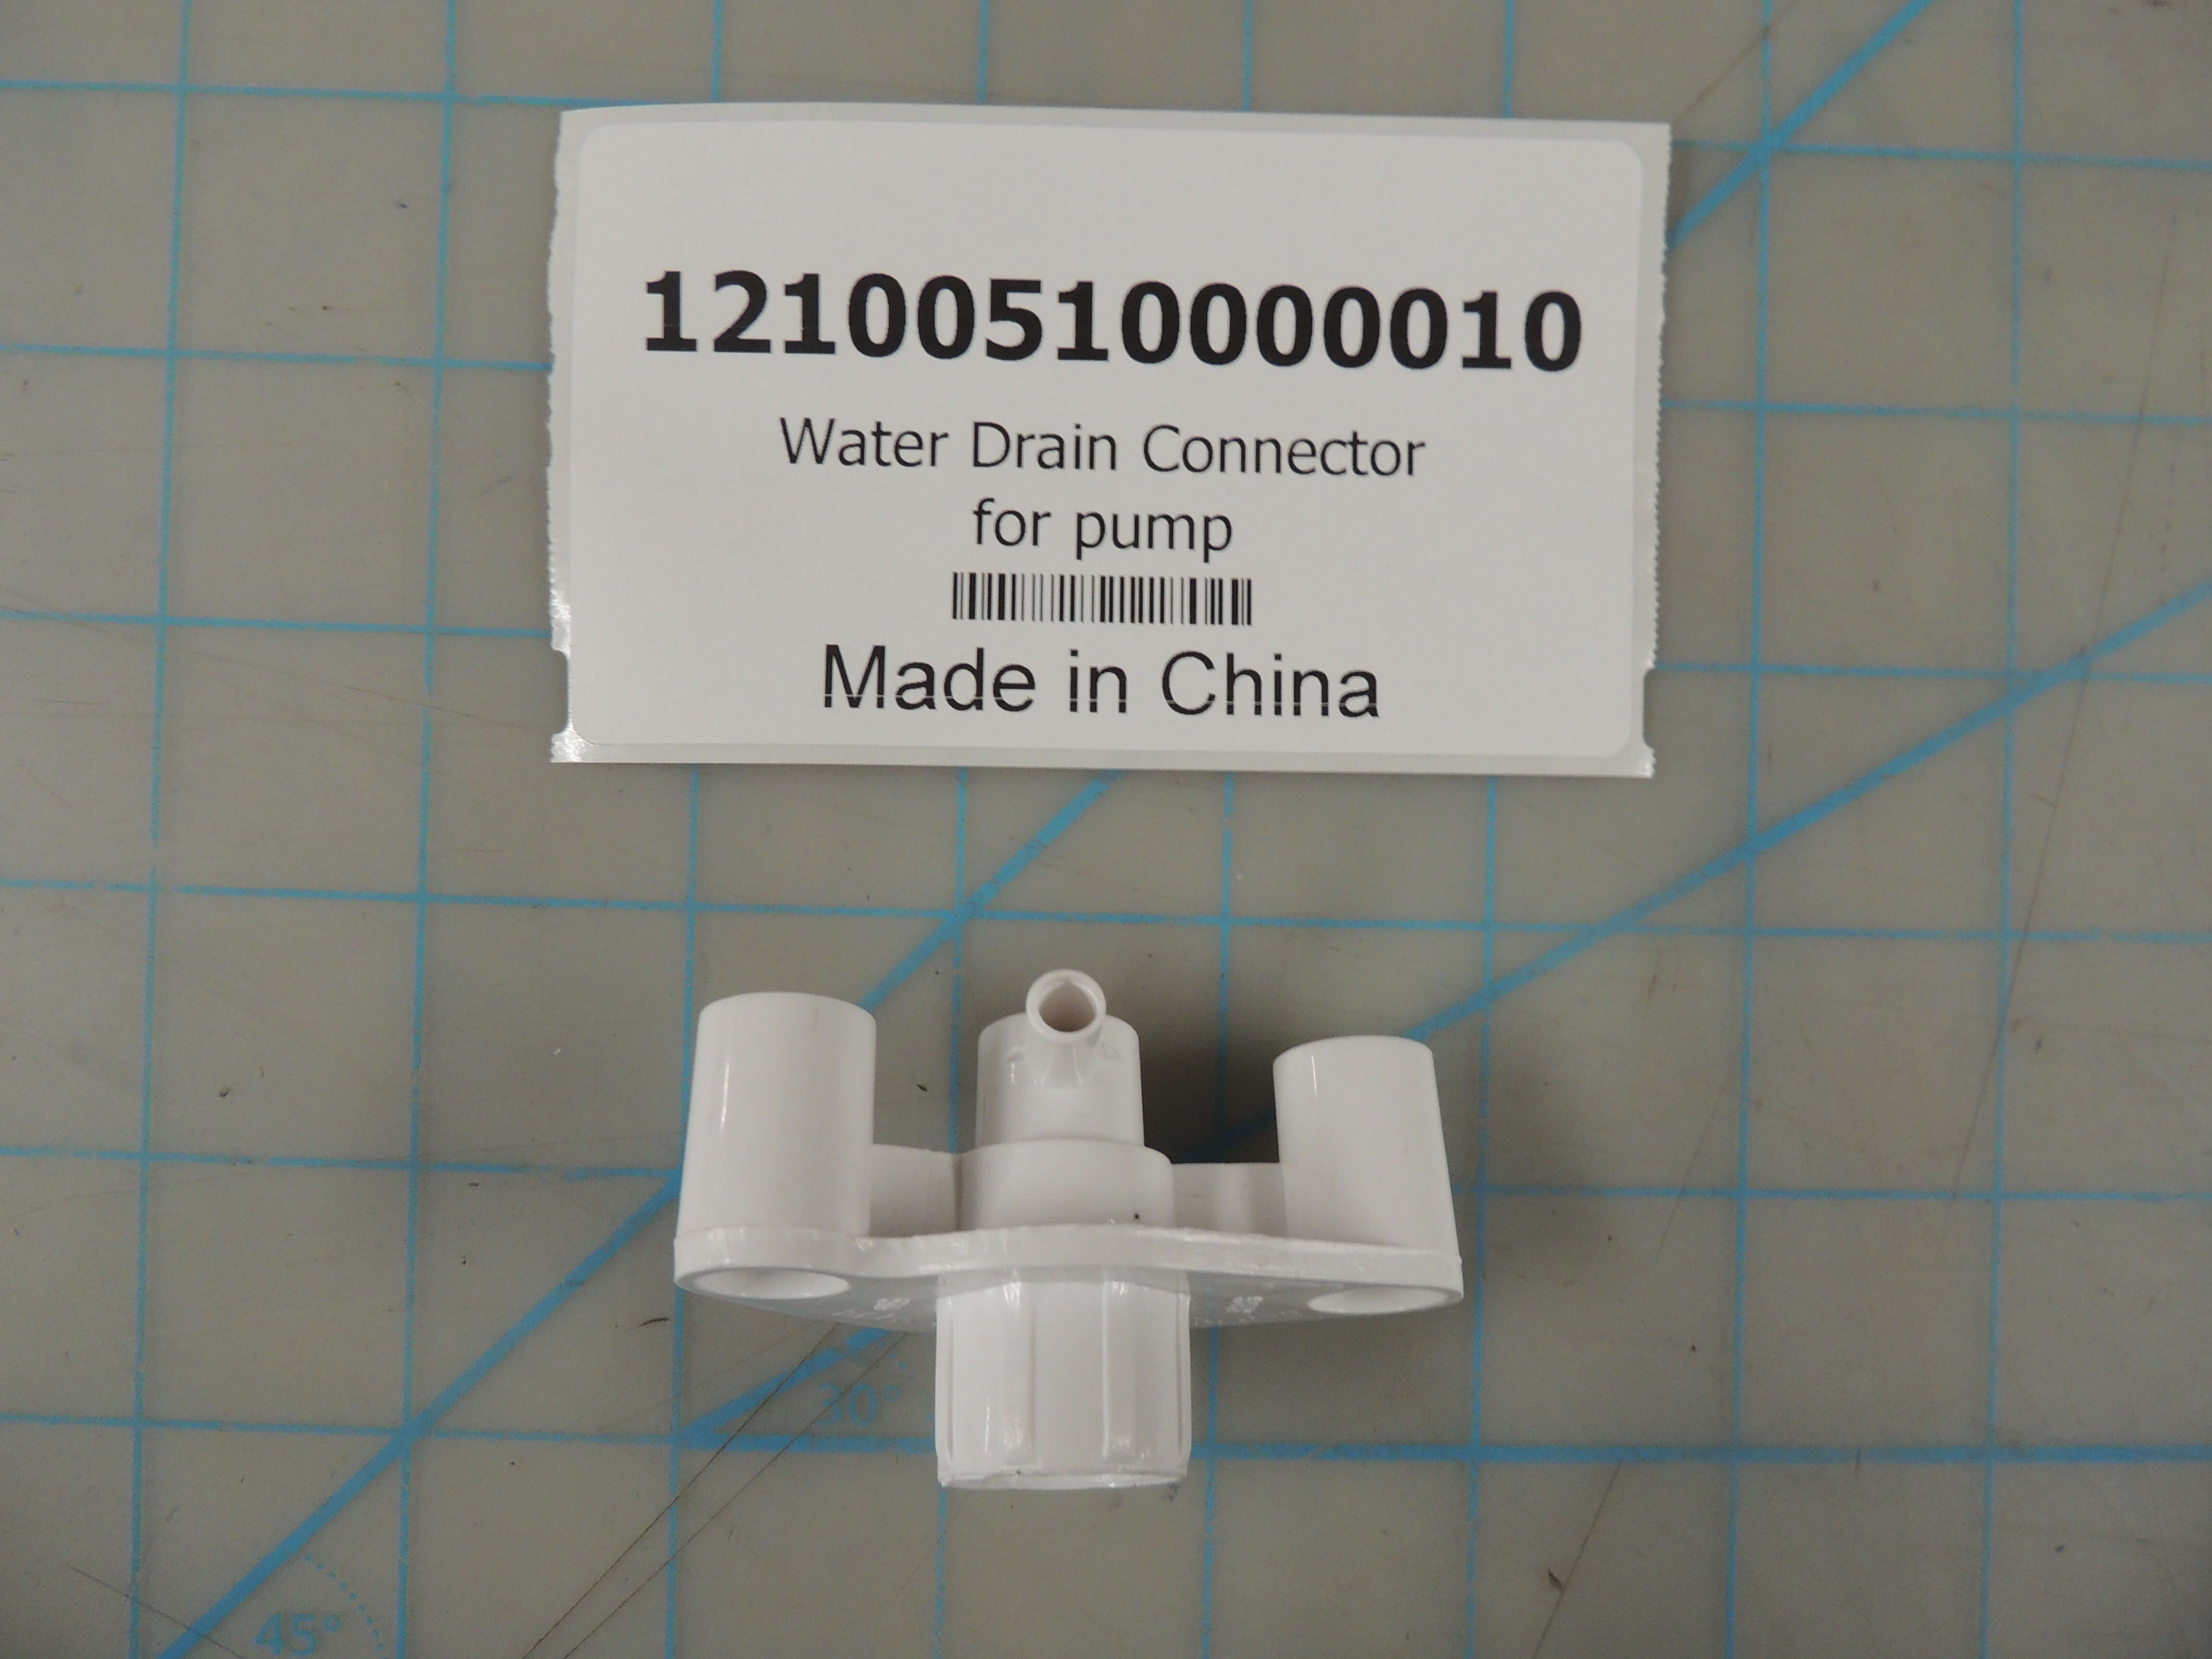 Water Drain Connector for pump